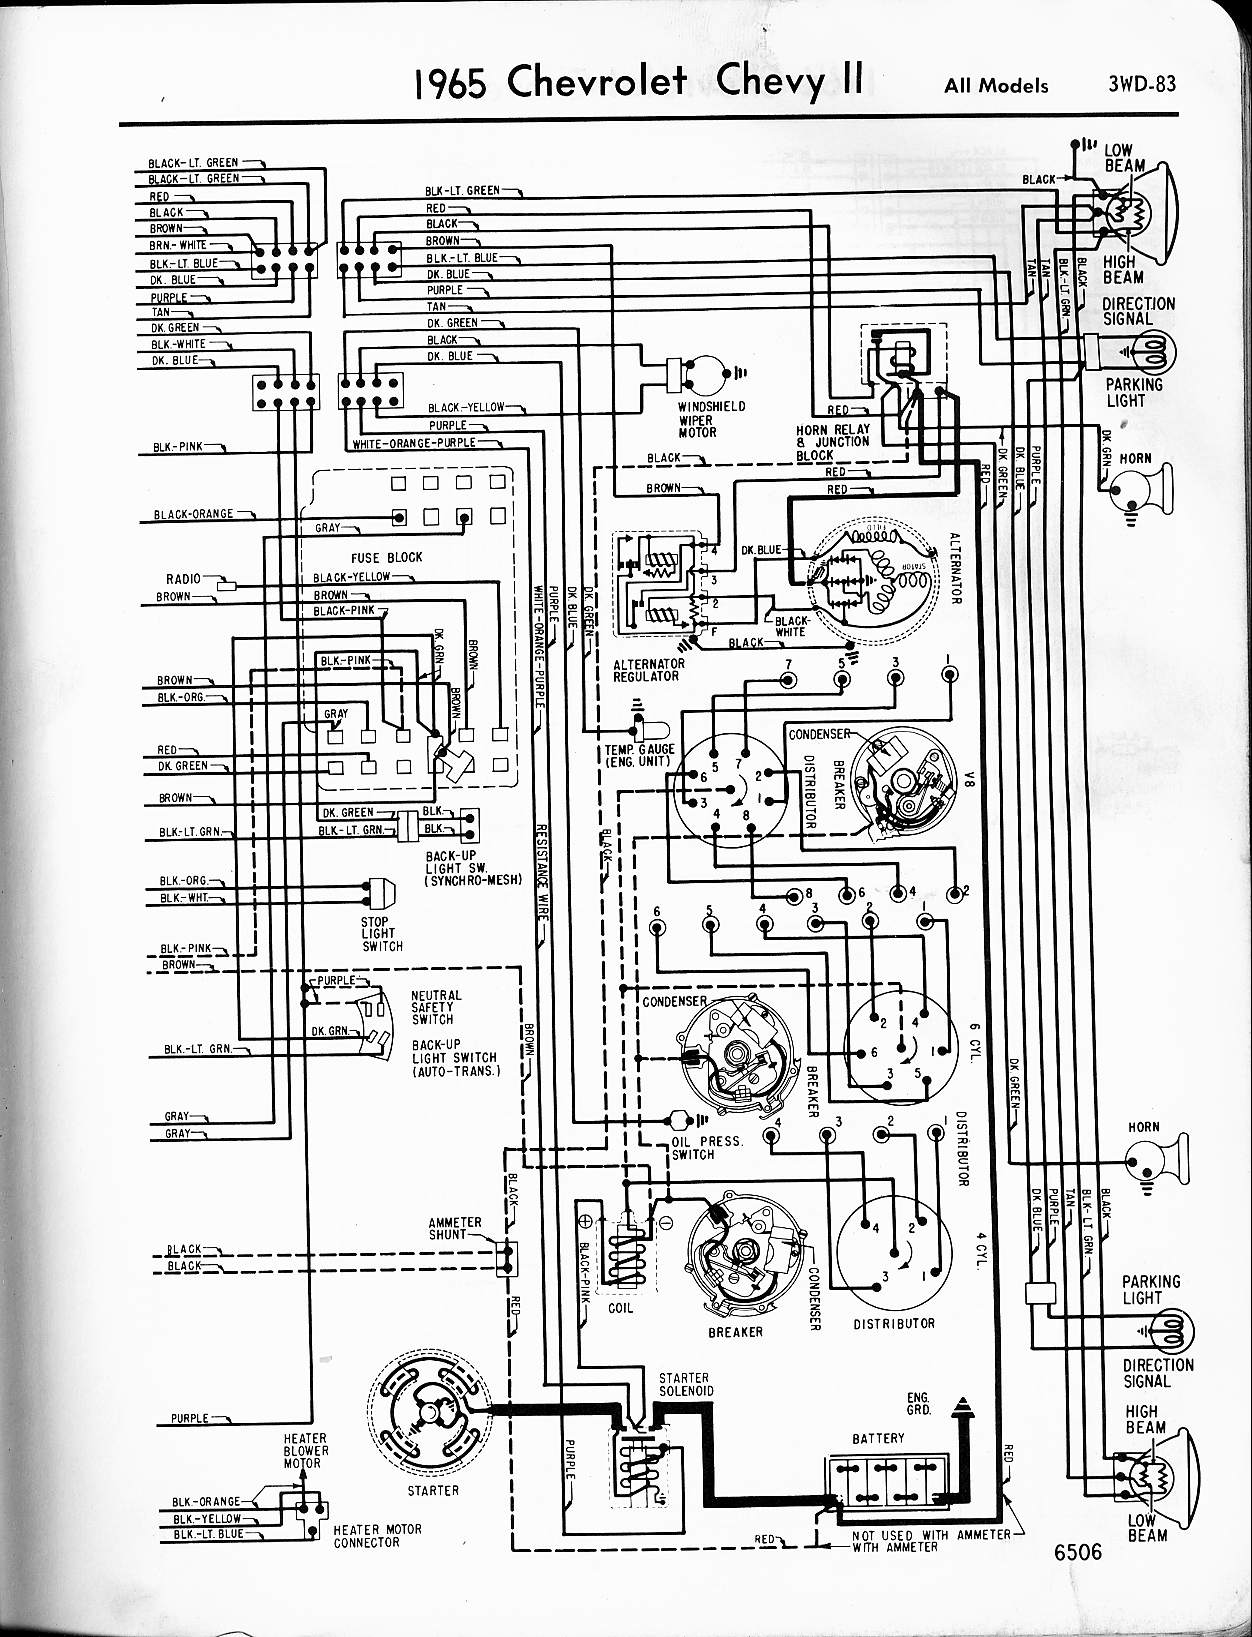 MWireChev65_3WD 083 chevy wiring diagrams chevy radio wiring \u2022 wiring diagrams j 1966 chevrolet caprice wiring diagram at gsmx.co